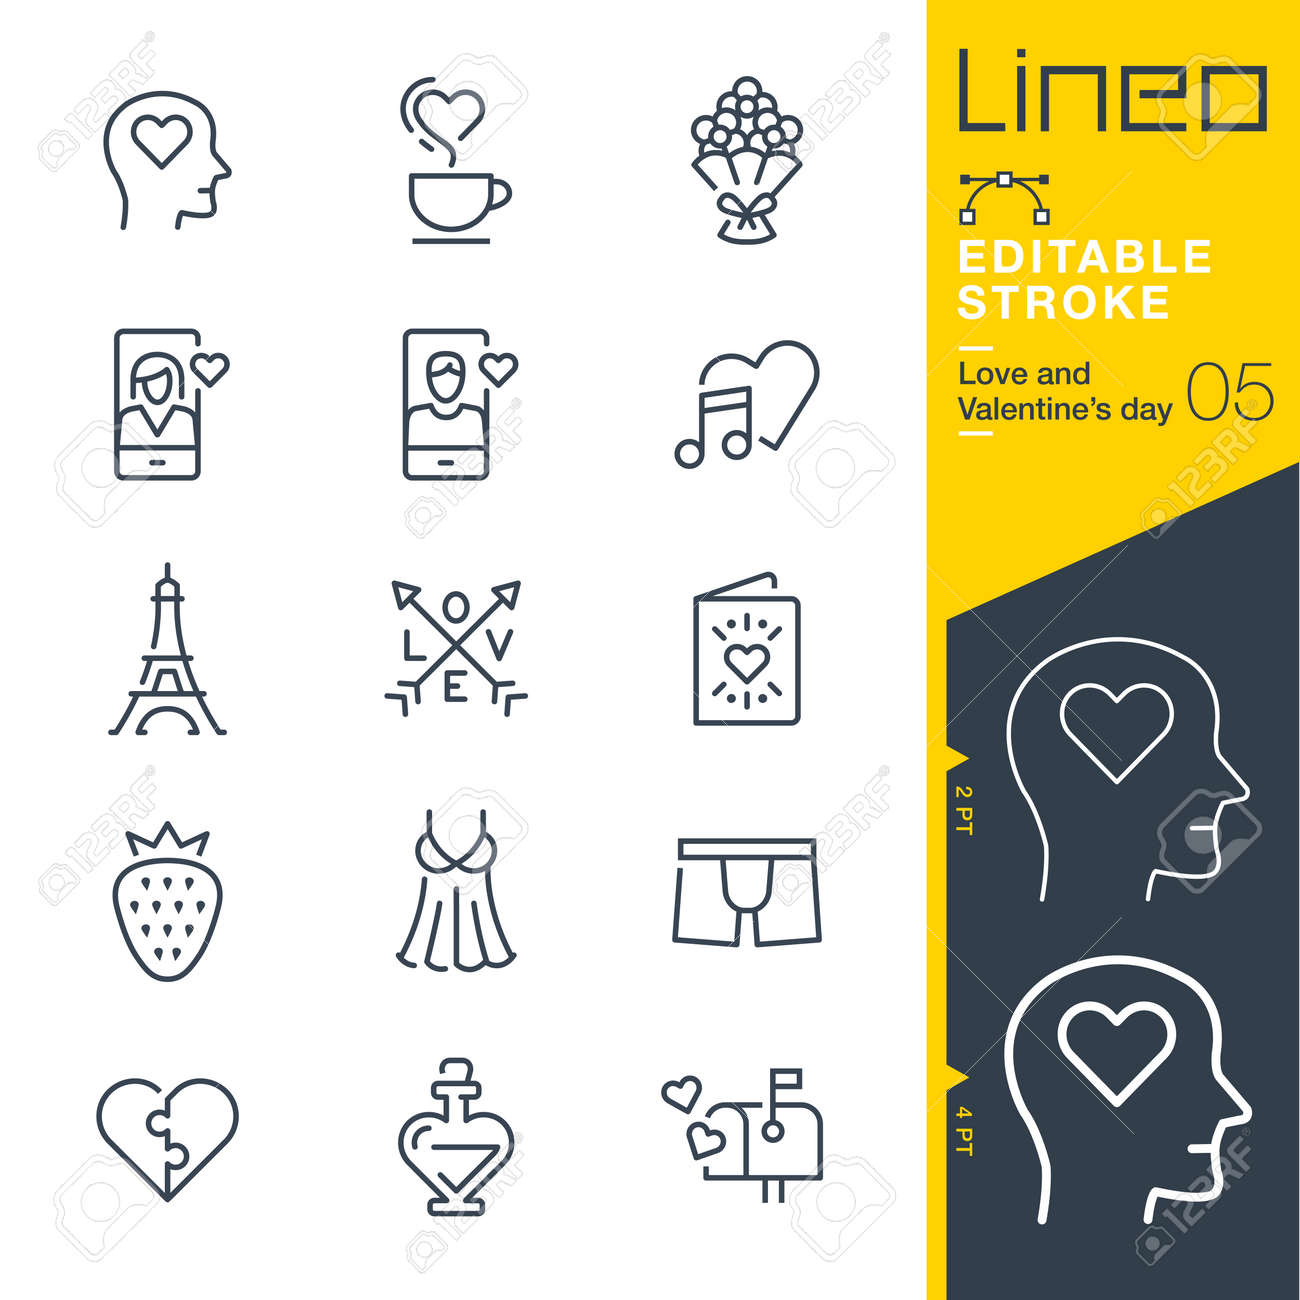 Lineo Editable Stroke - Love and Valentine? ? ? s day line icon Icons - Adjust stroke weight - Change to any color - 84275919